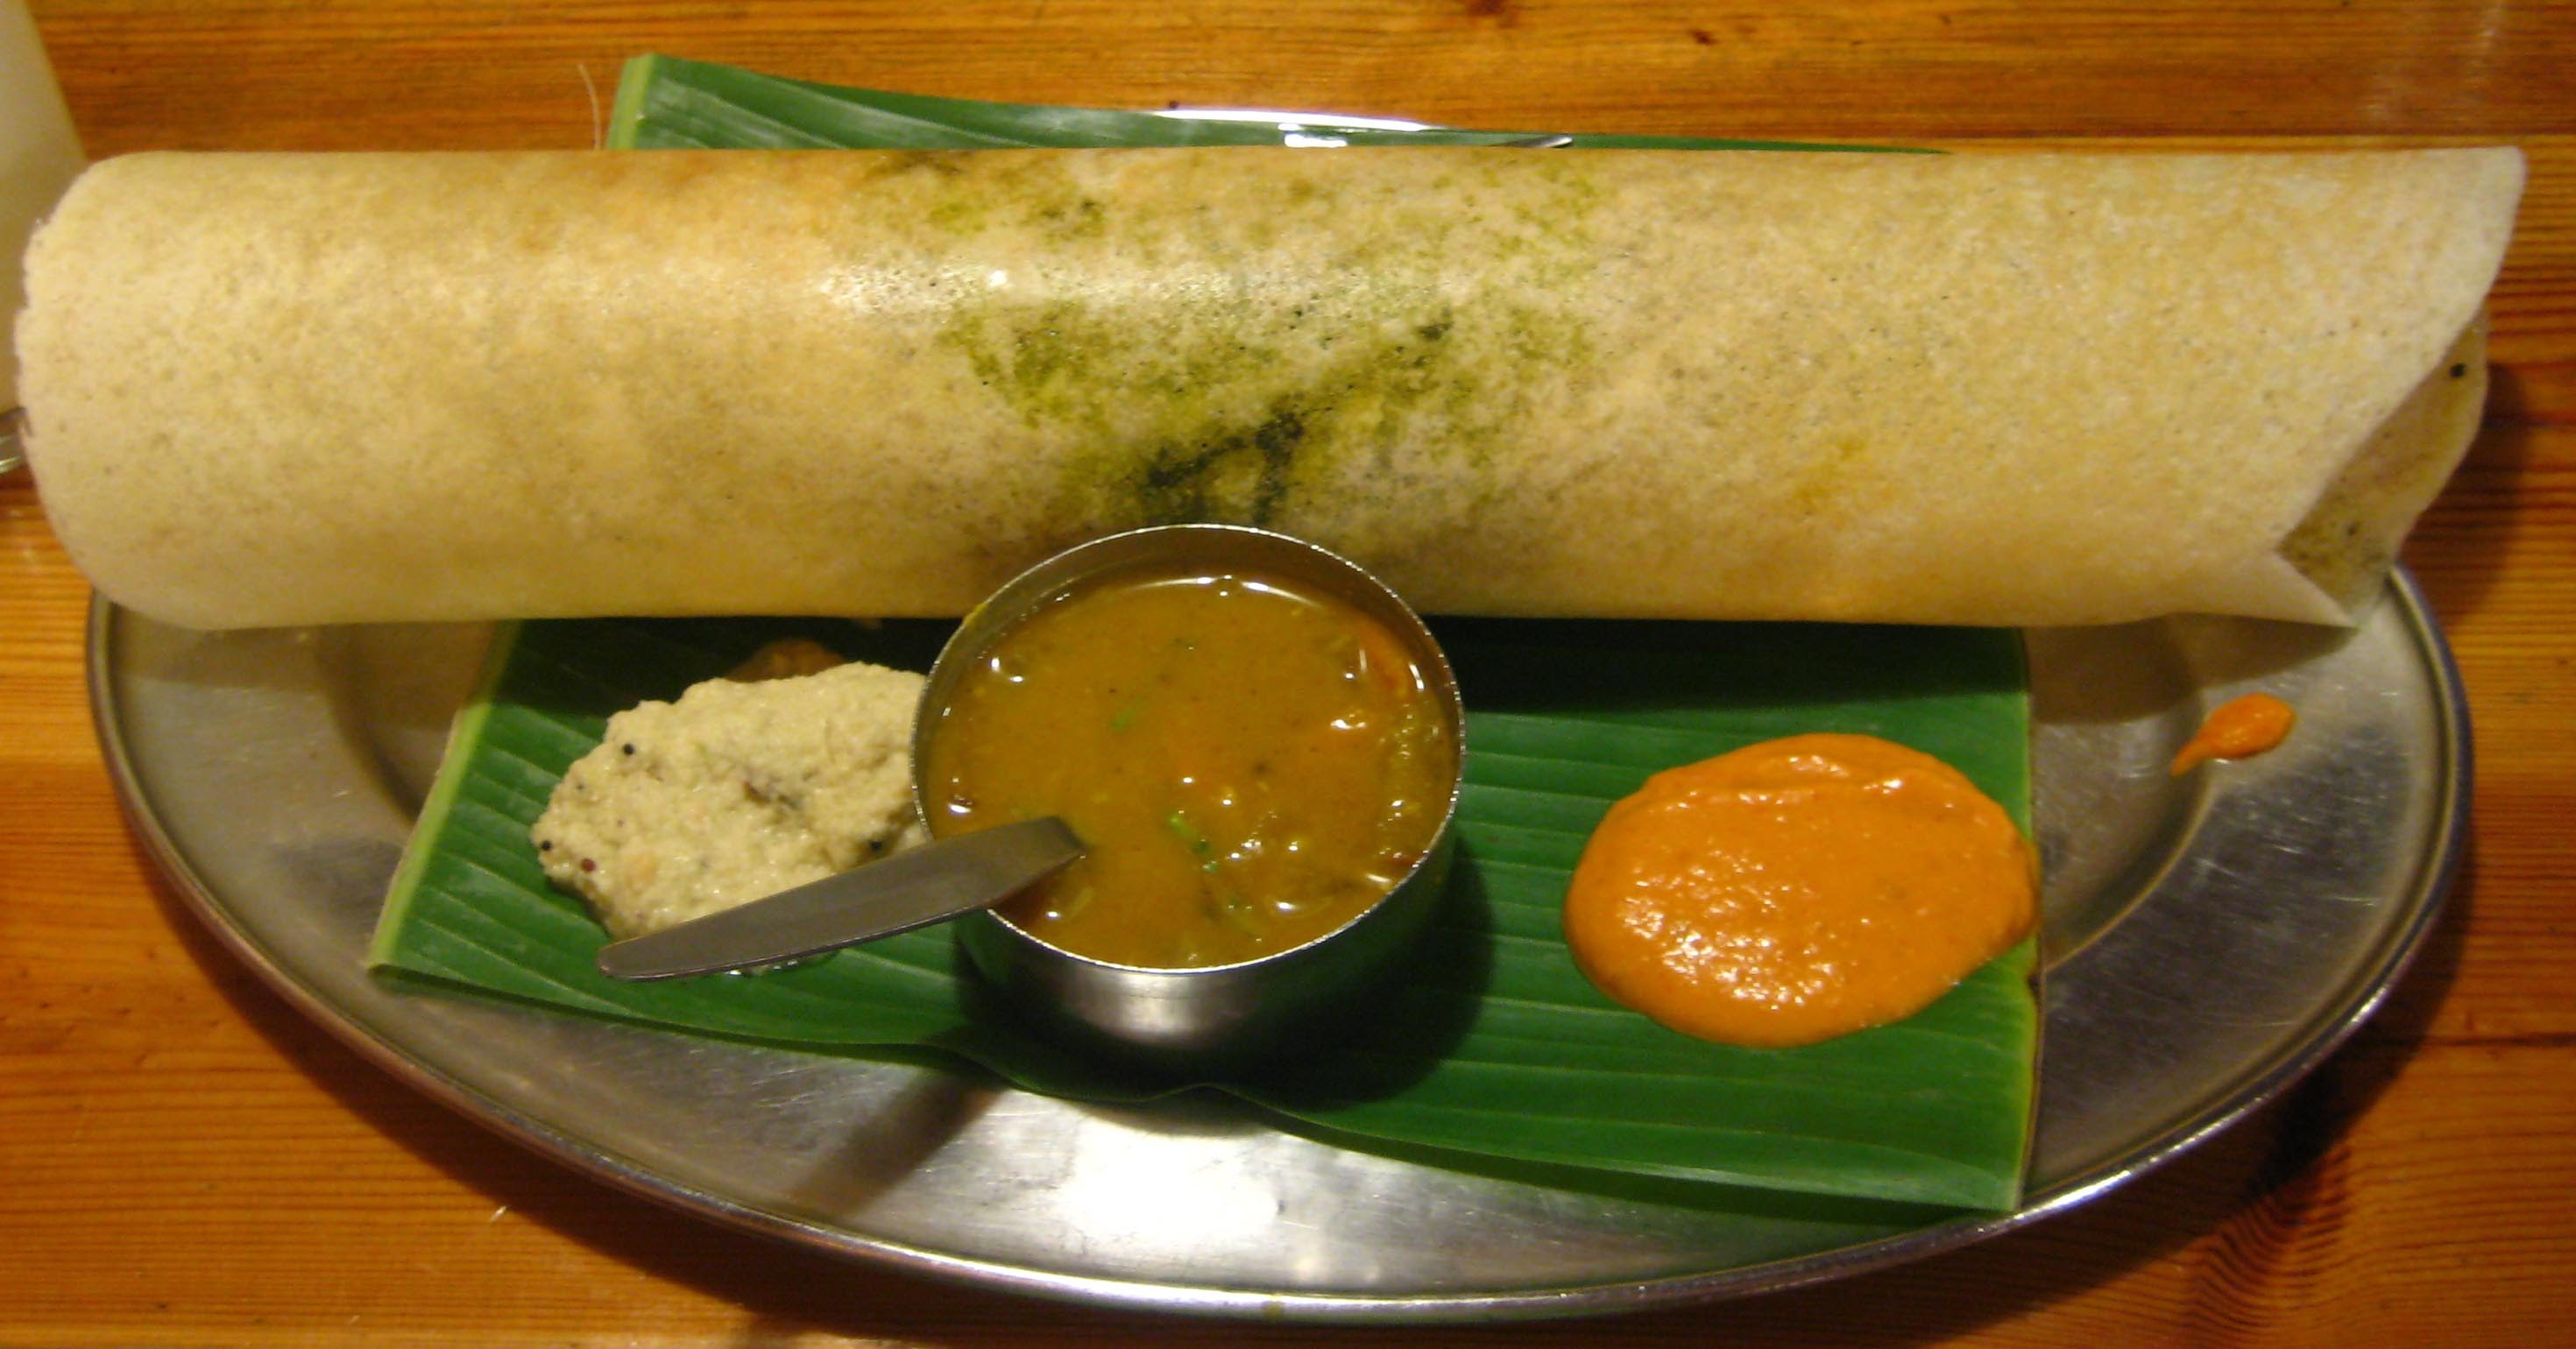 Top 5 south indian dishes for hungry travelers south indian cuisine masala dosa south indian rice flour crepes forumfinder Image collections